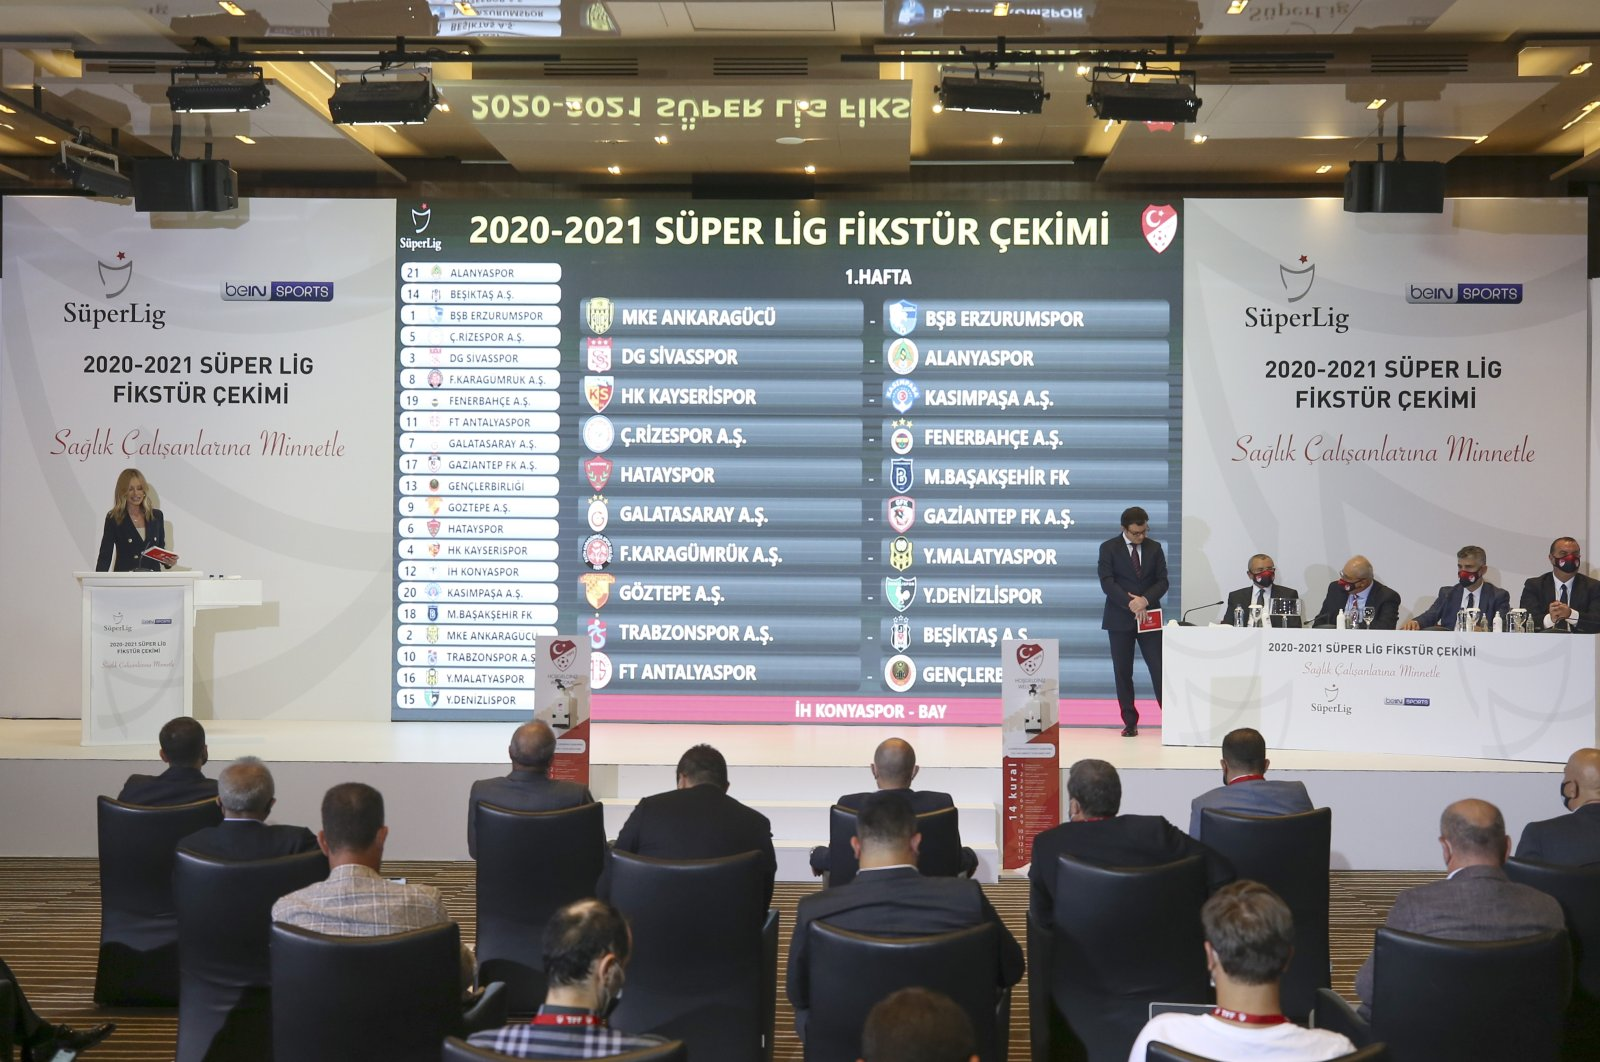 Turkish Football Federation (TFF) officials hold a drawing to determine Süper Lig's 2020-2021 calendar at TFF headquarters in Riva, Beykoz district, Istanbul, Aug. 26, 2020. (AA Photo)